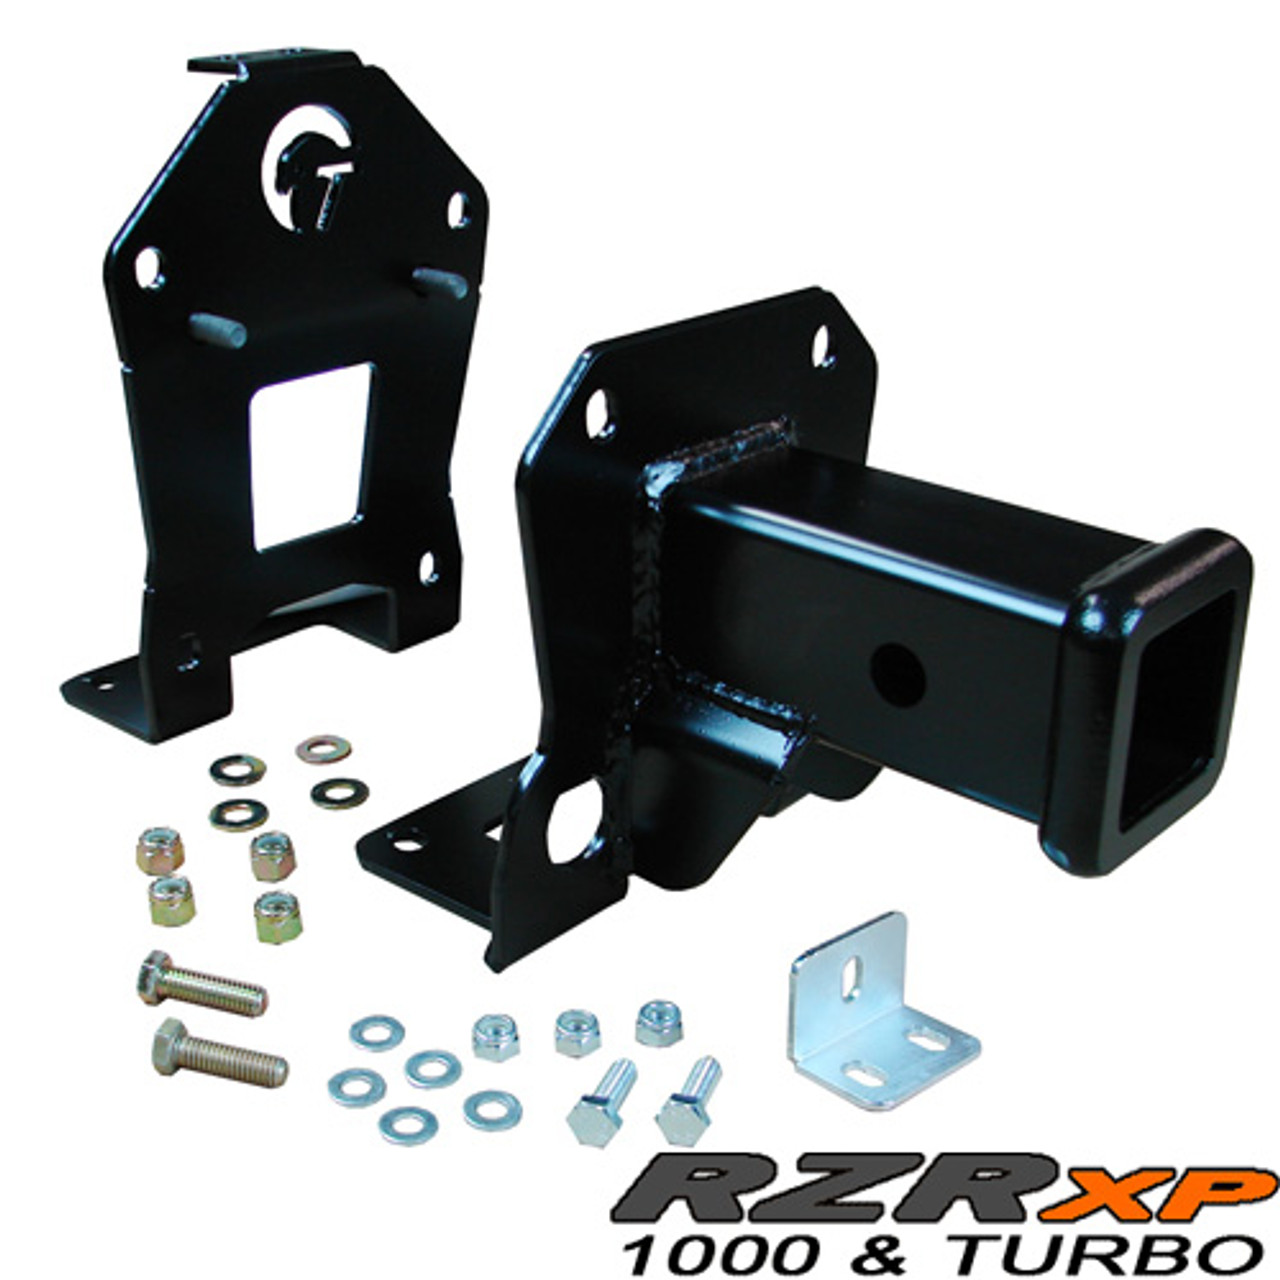 Receiver Hitch, Rear (fits with Polaris rear bumper)